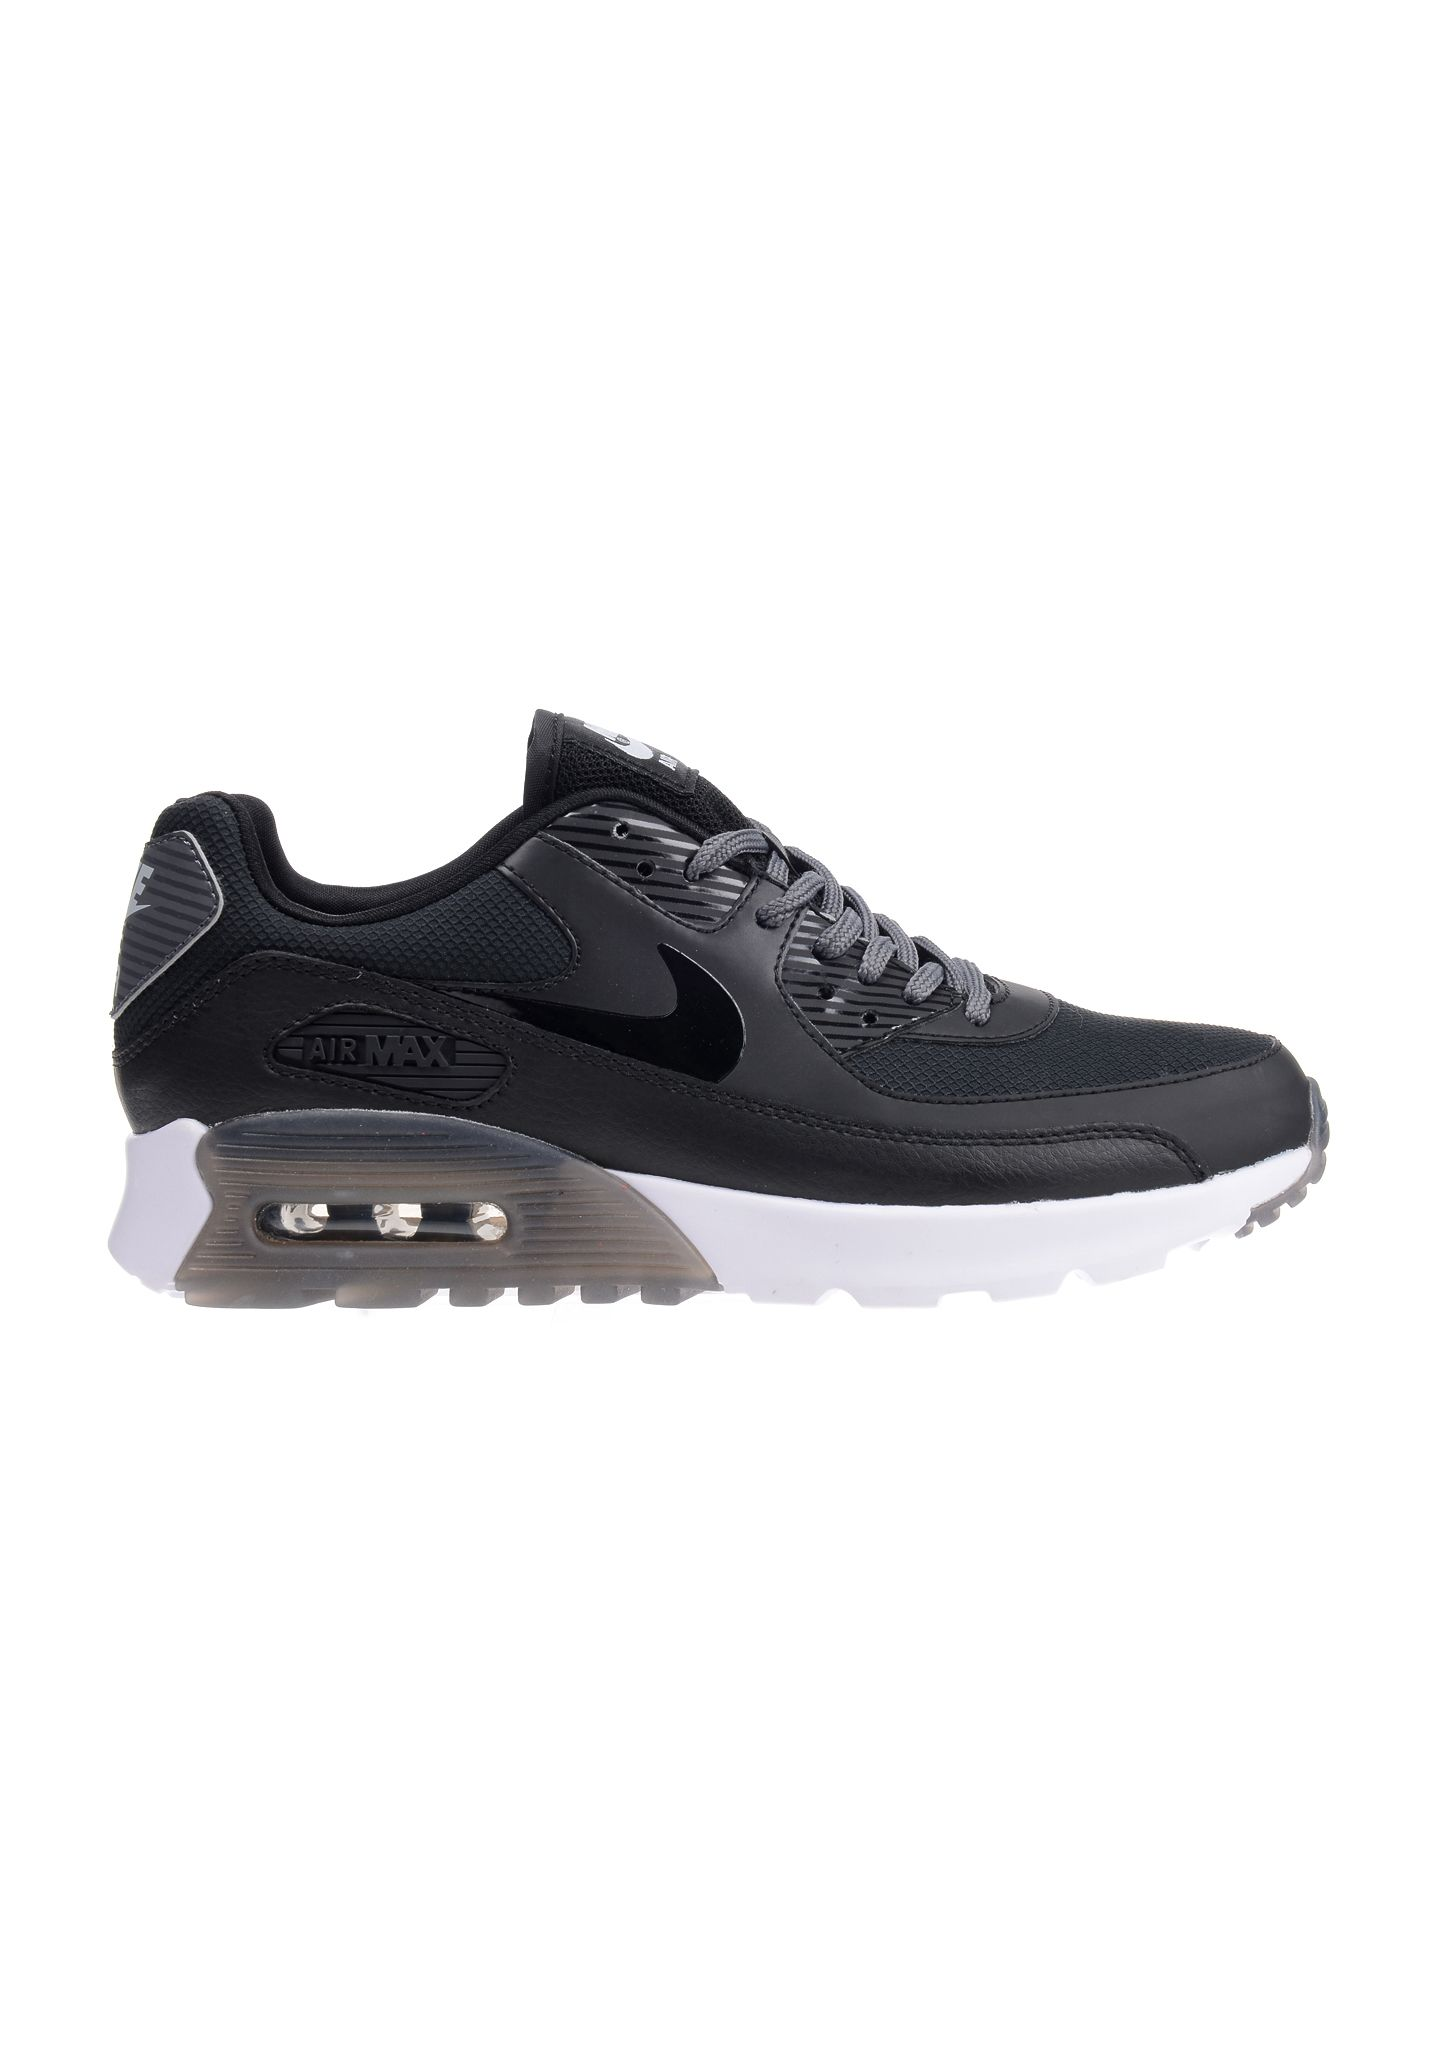 nike air max 90 essential in sport grey  black  white